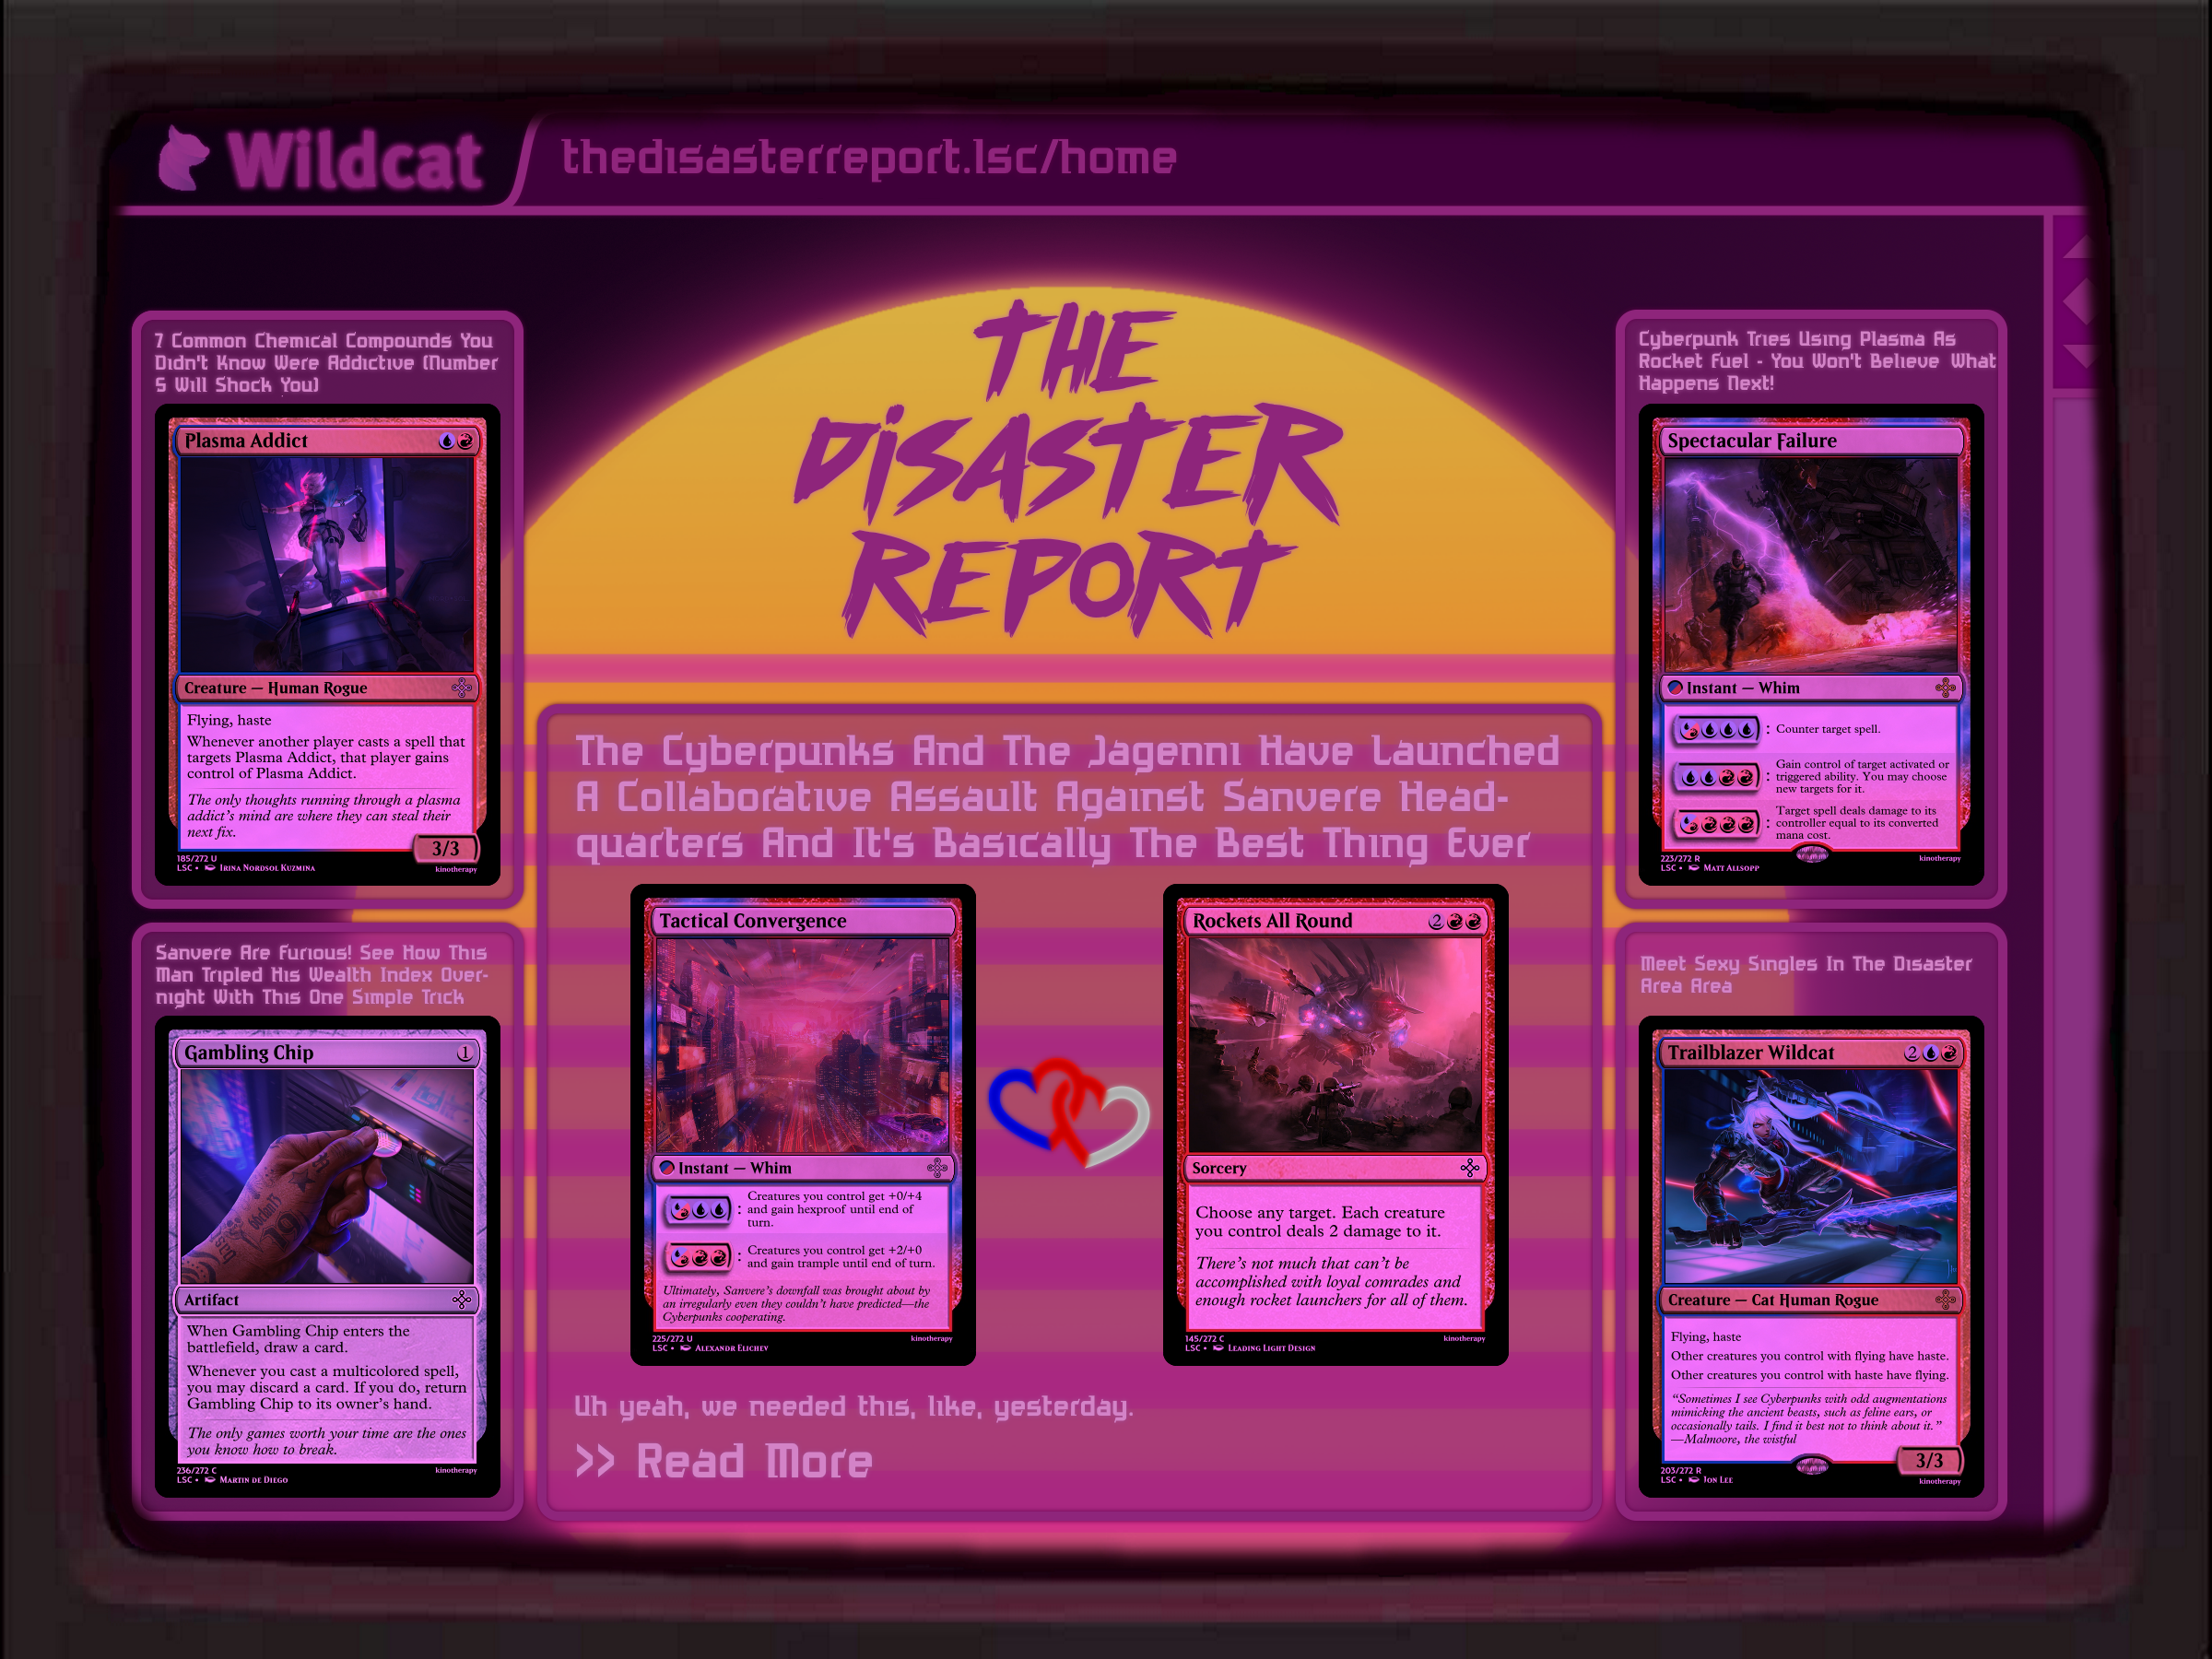 'The Disaster Report' Homepage